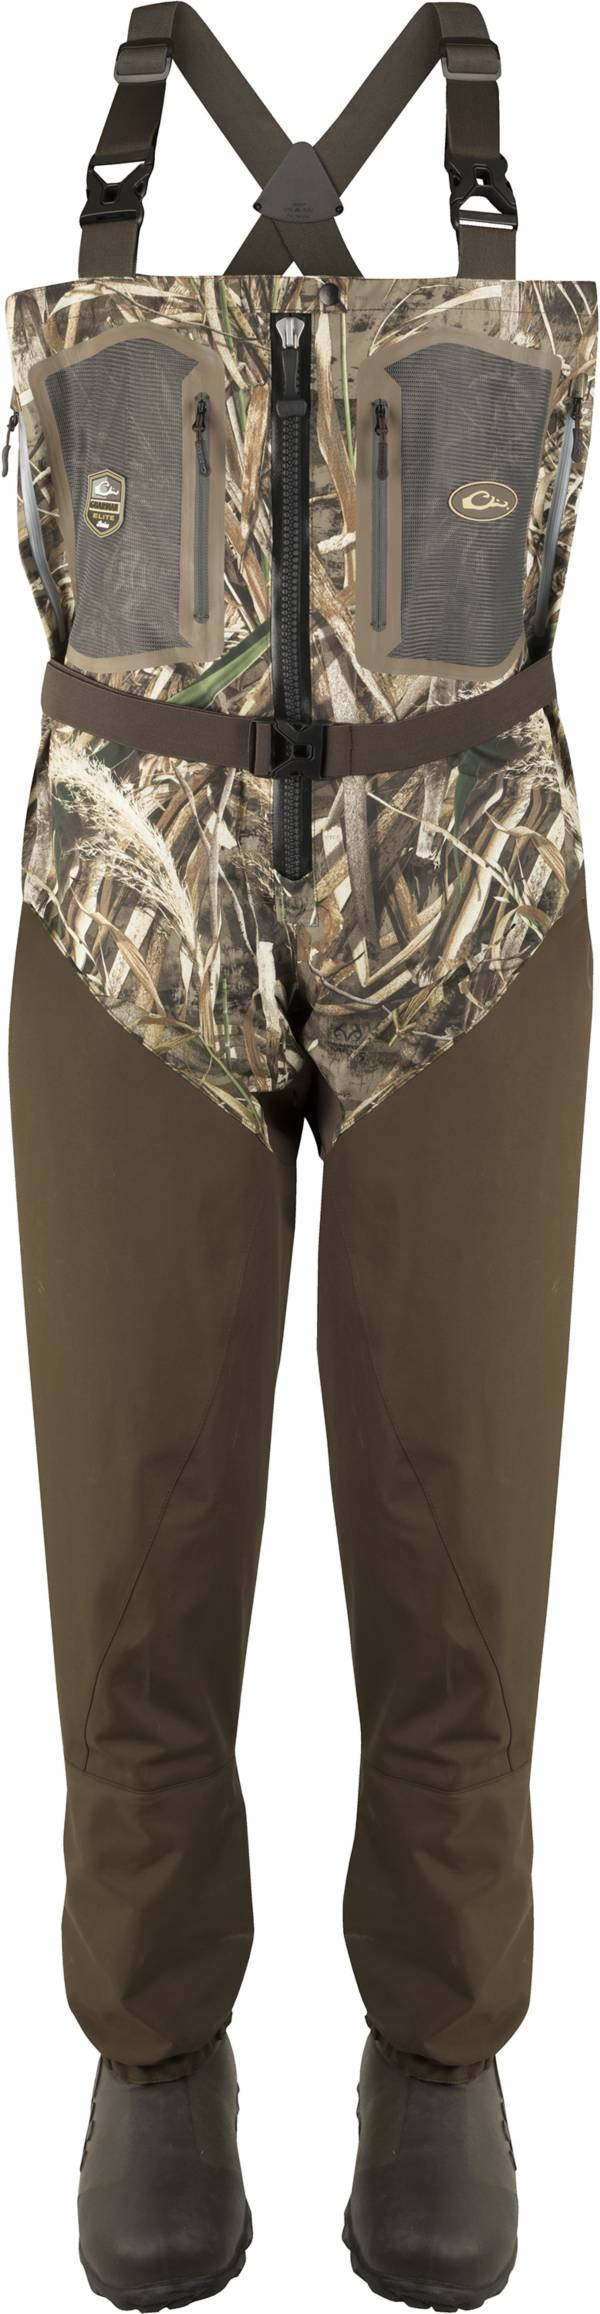 Drake Waterfowl Guardian Elite 4-Layer Chest Waders with Tear-Away Liner product image